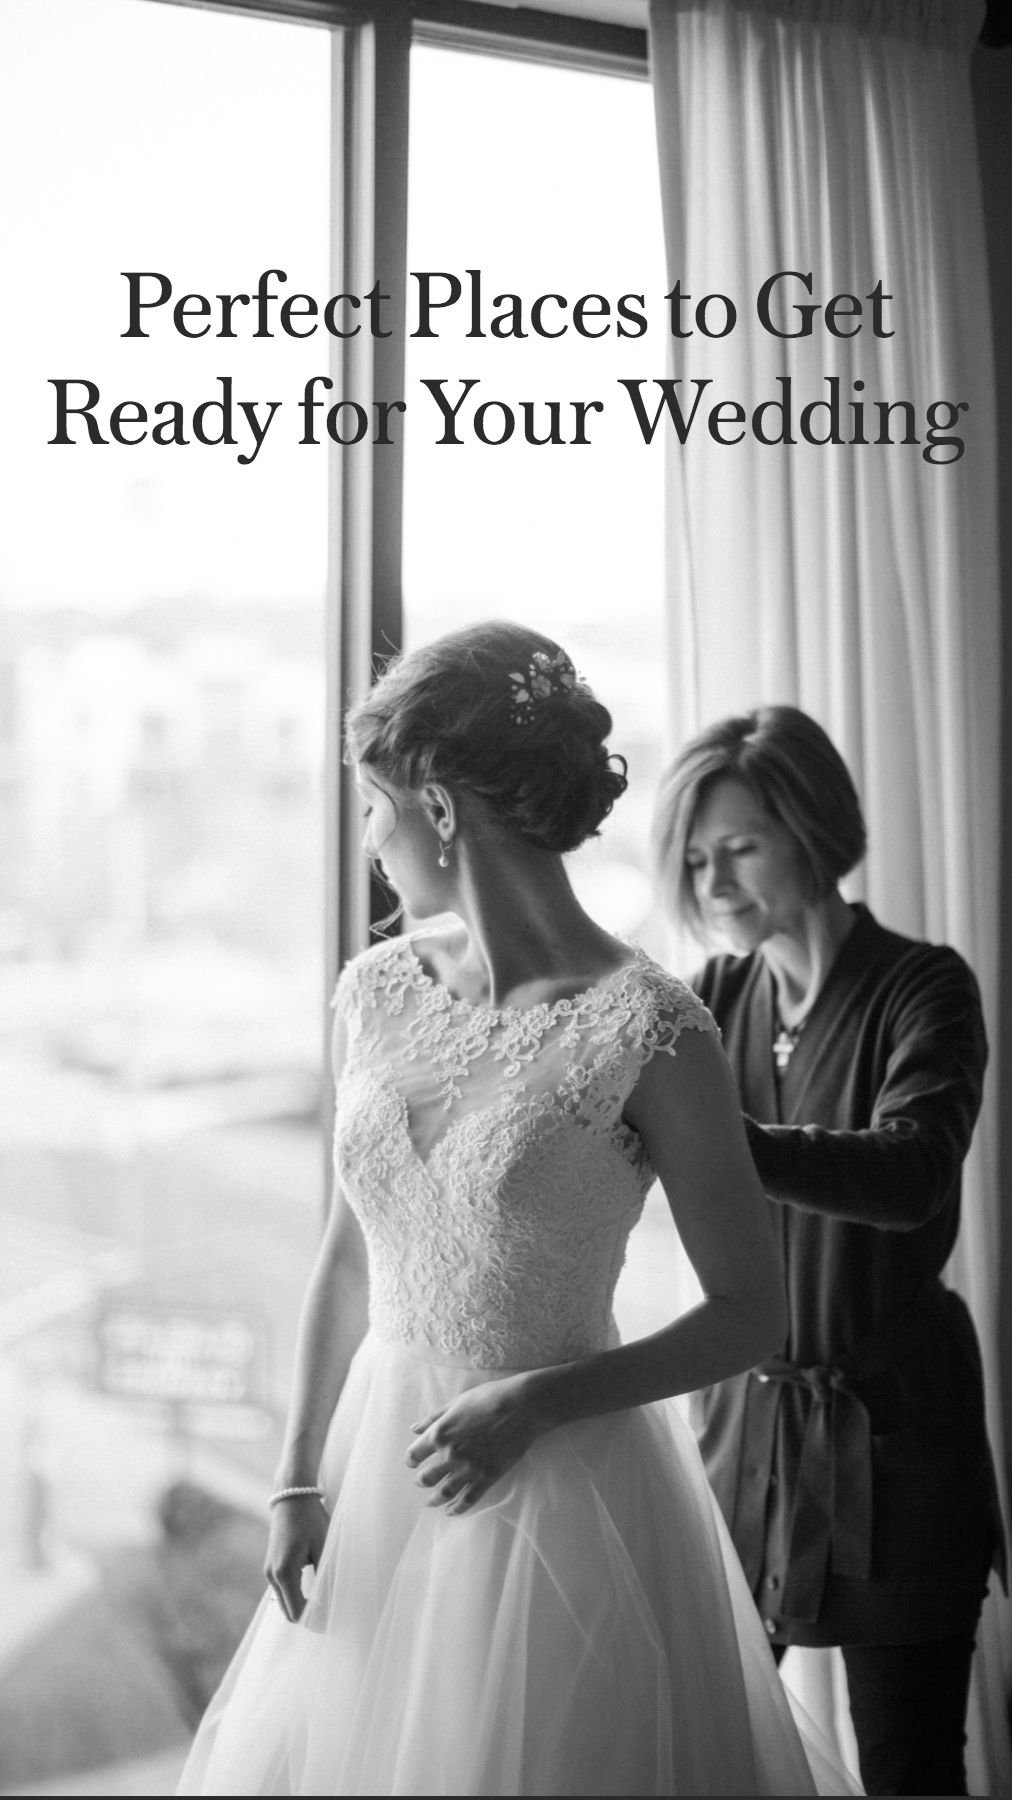 Perfect Places to Get Ready for Your Wedding